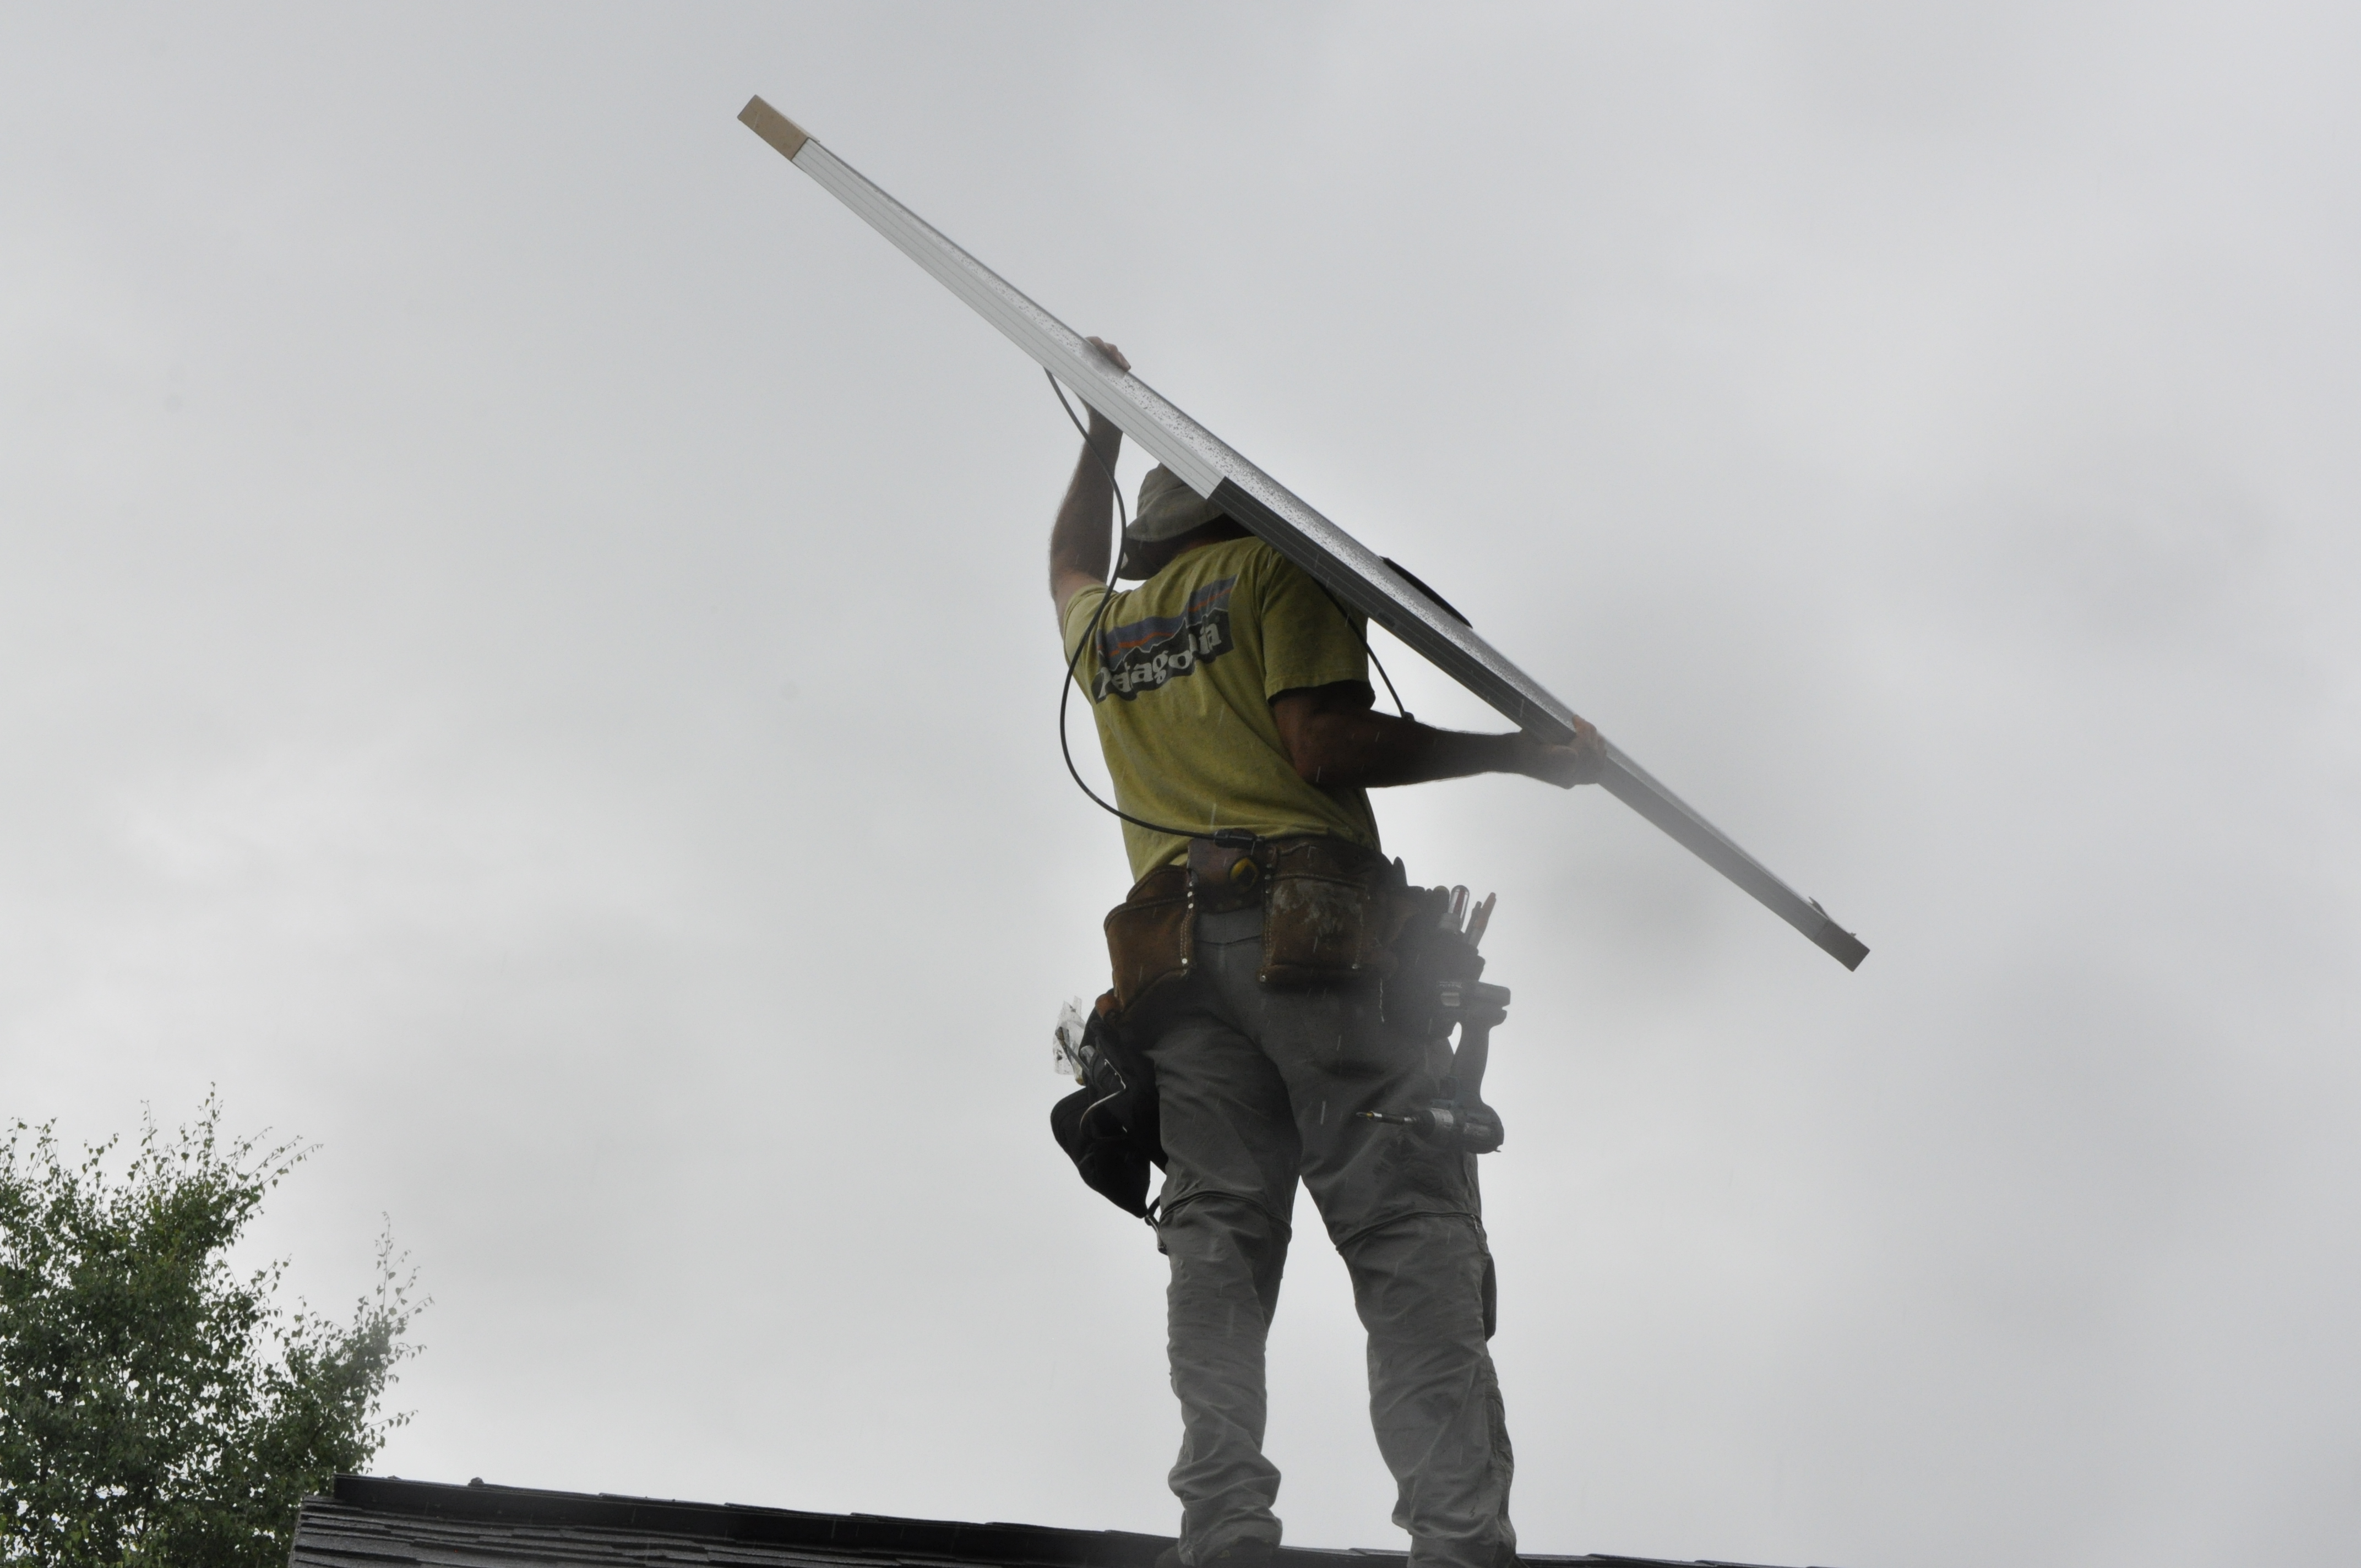 Anchorage Solar employee Tim Remick hoists a solar panel over his head before installing it on Solarize Anchorage participant Lisa Pekar's roof. The program saved participants around 10 percent on solar panel installations. (Photo by Erin McKinstry, Alaska Public Media)